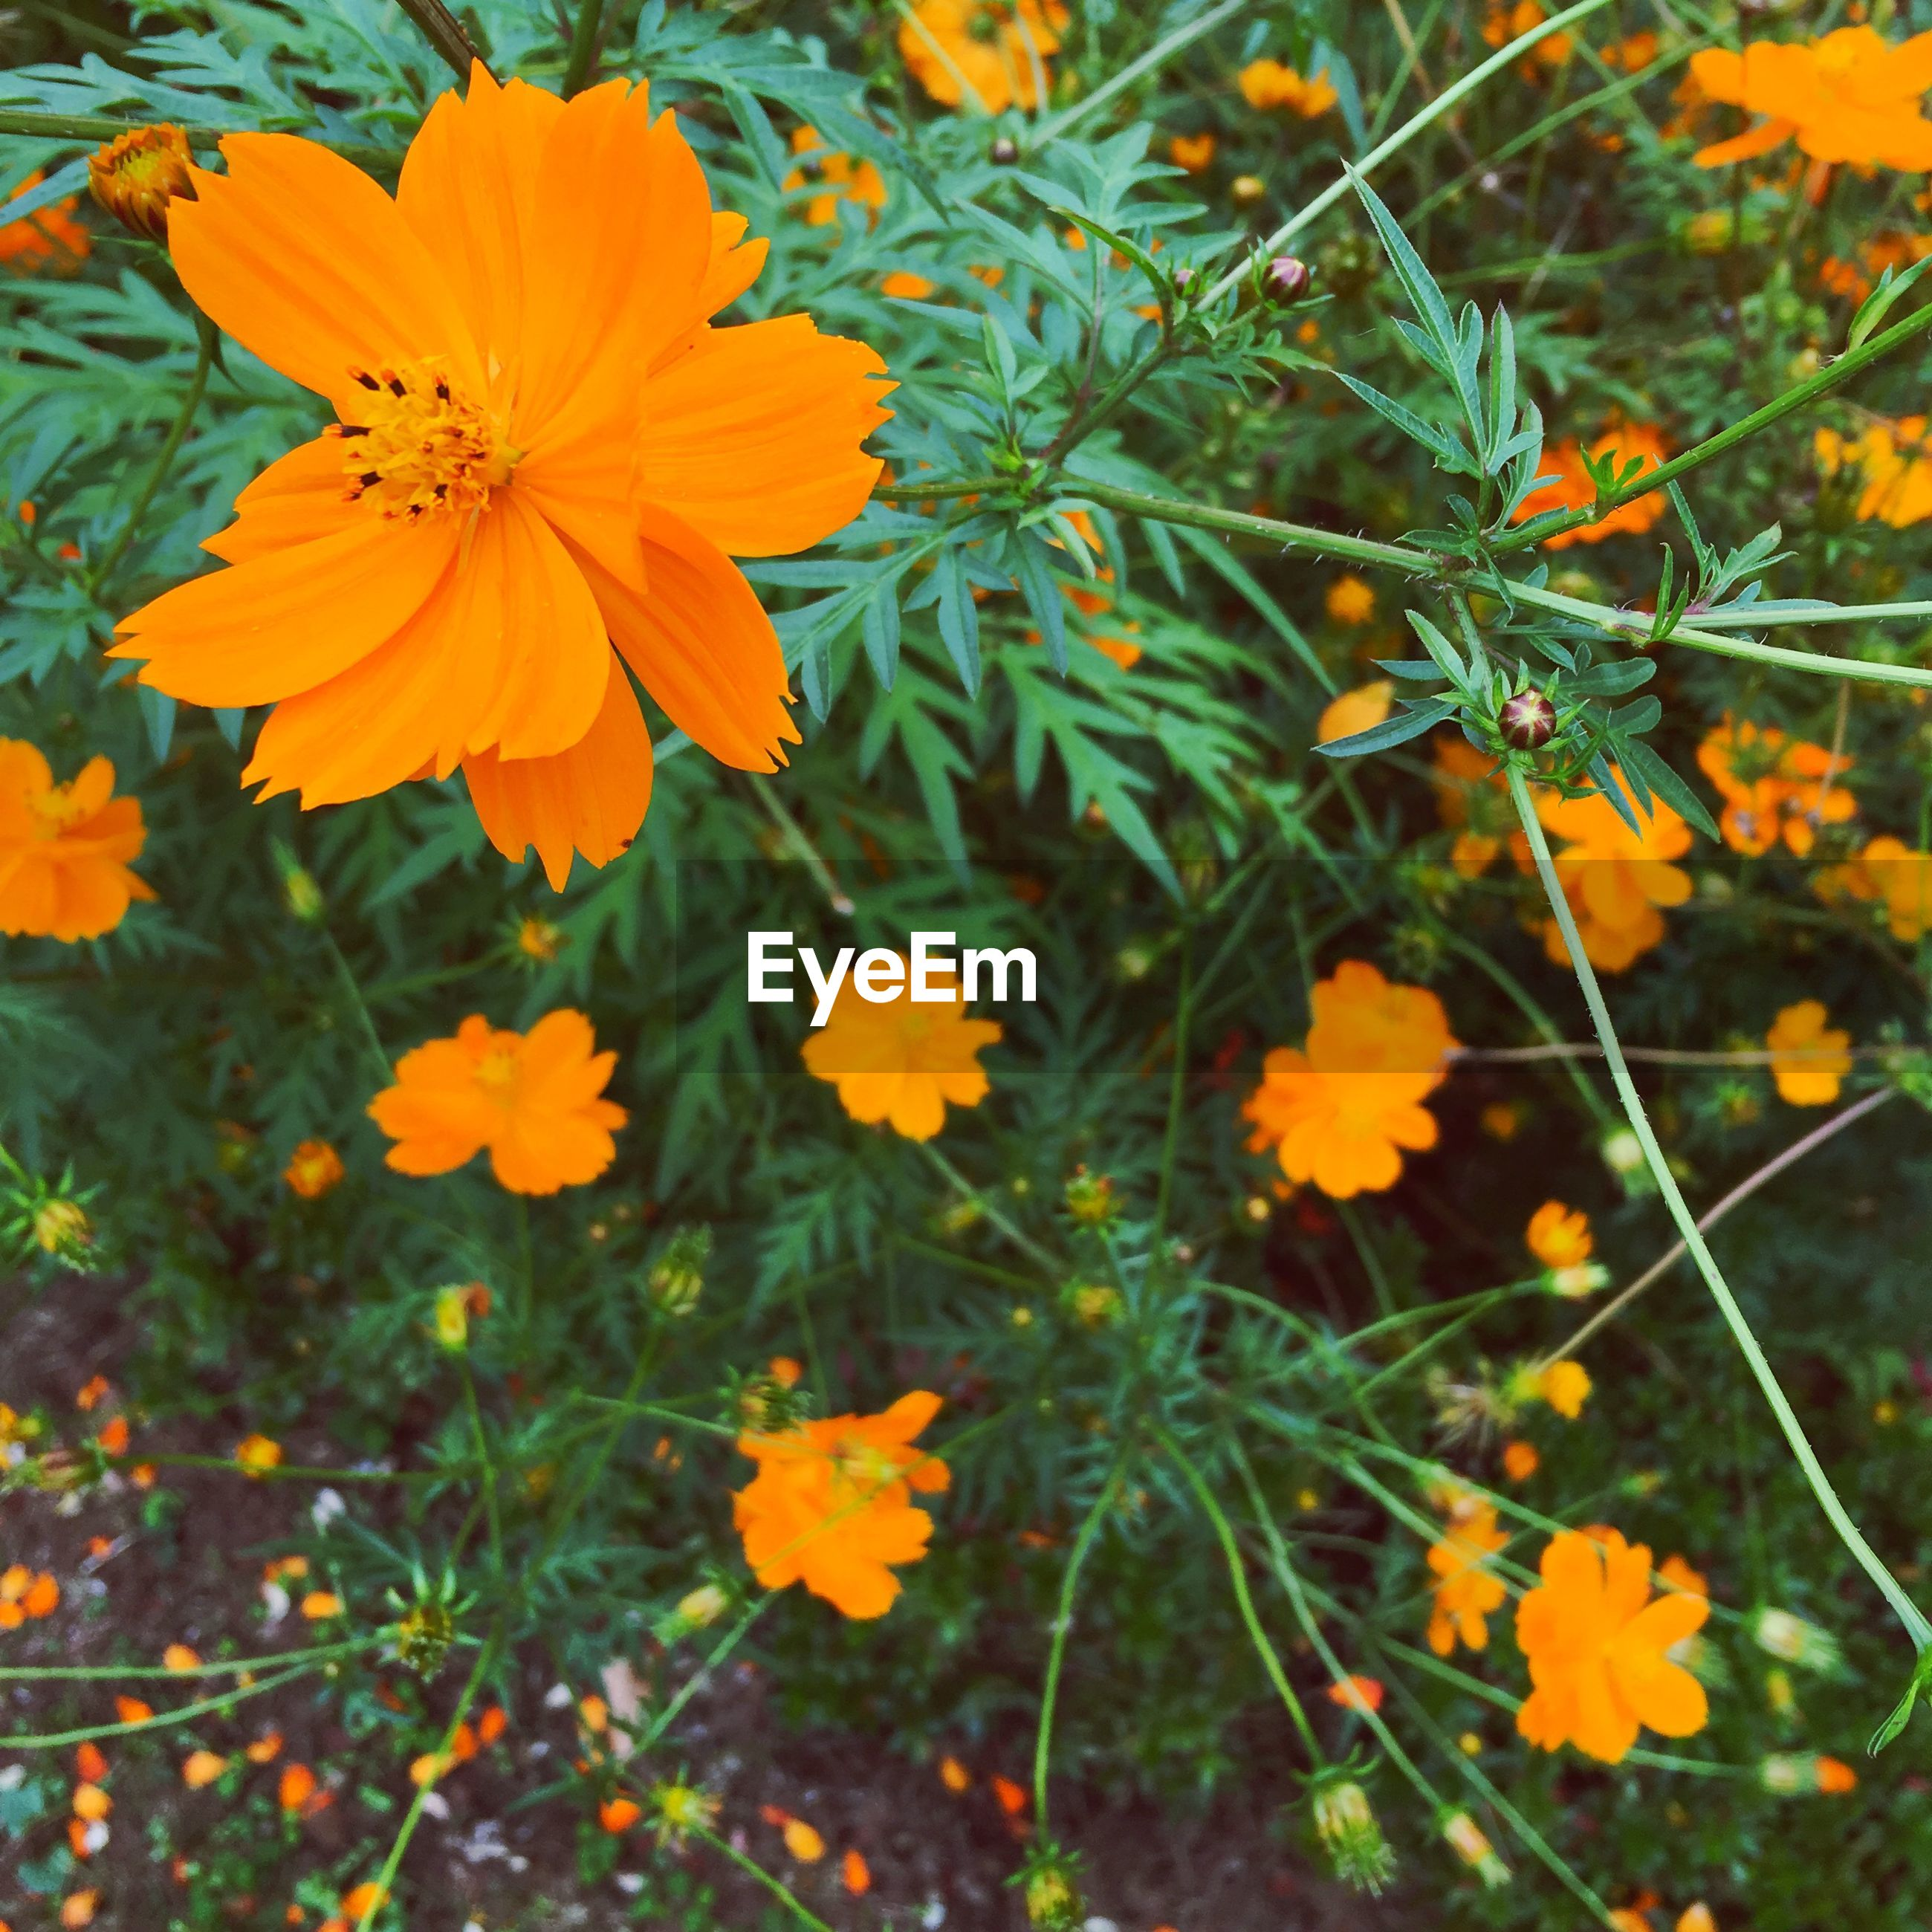 Pot marigold blooming on field